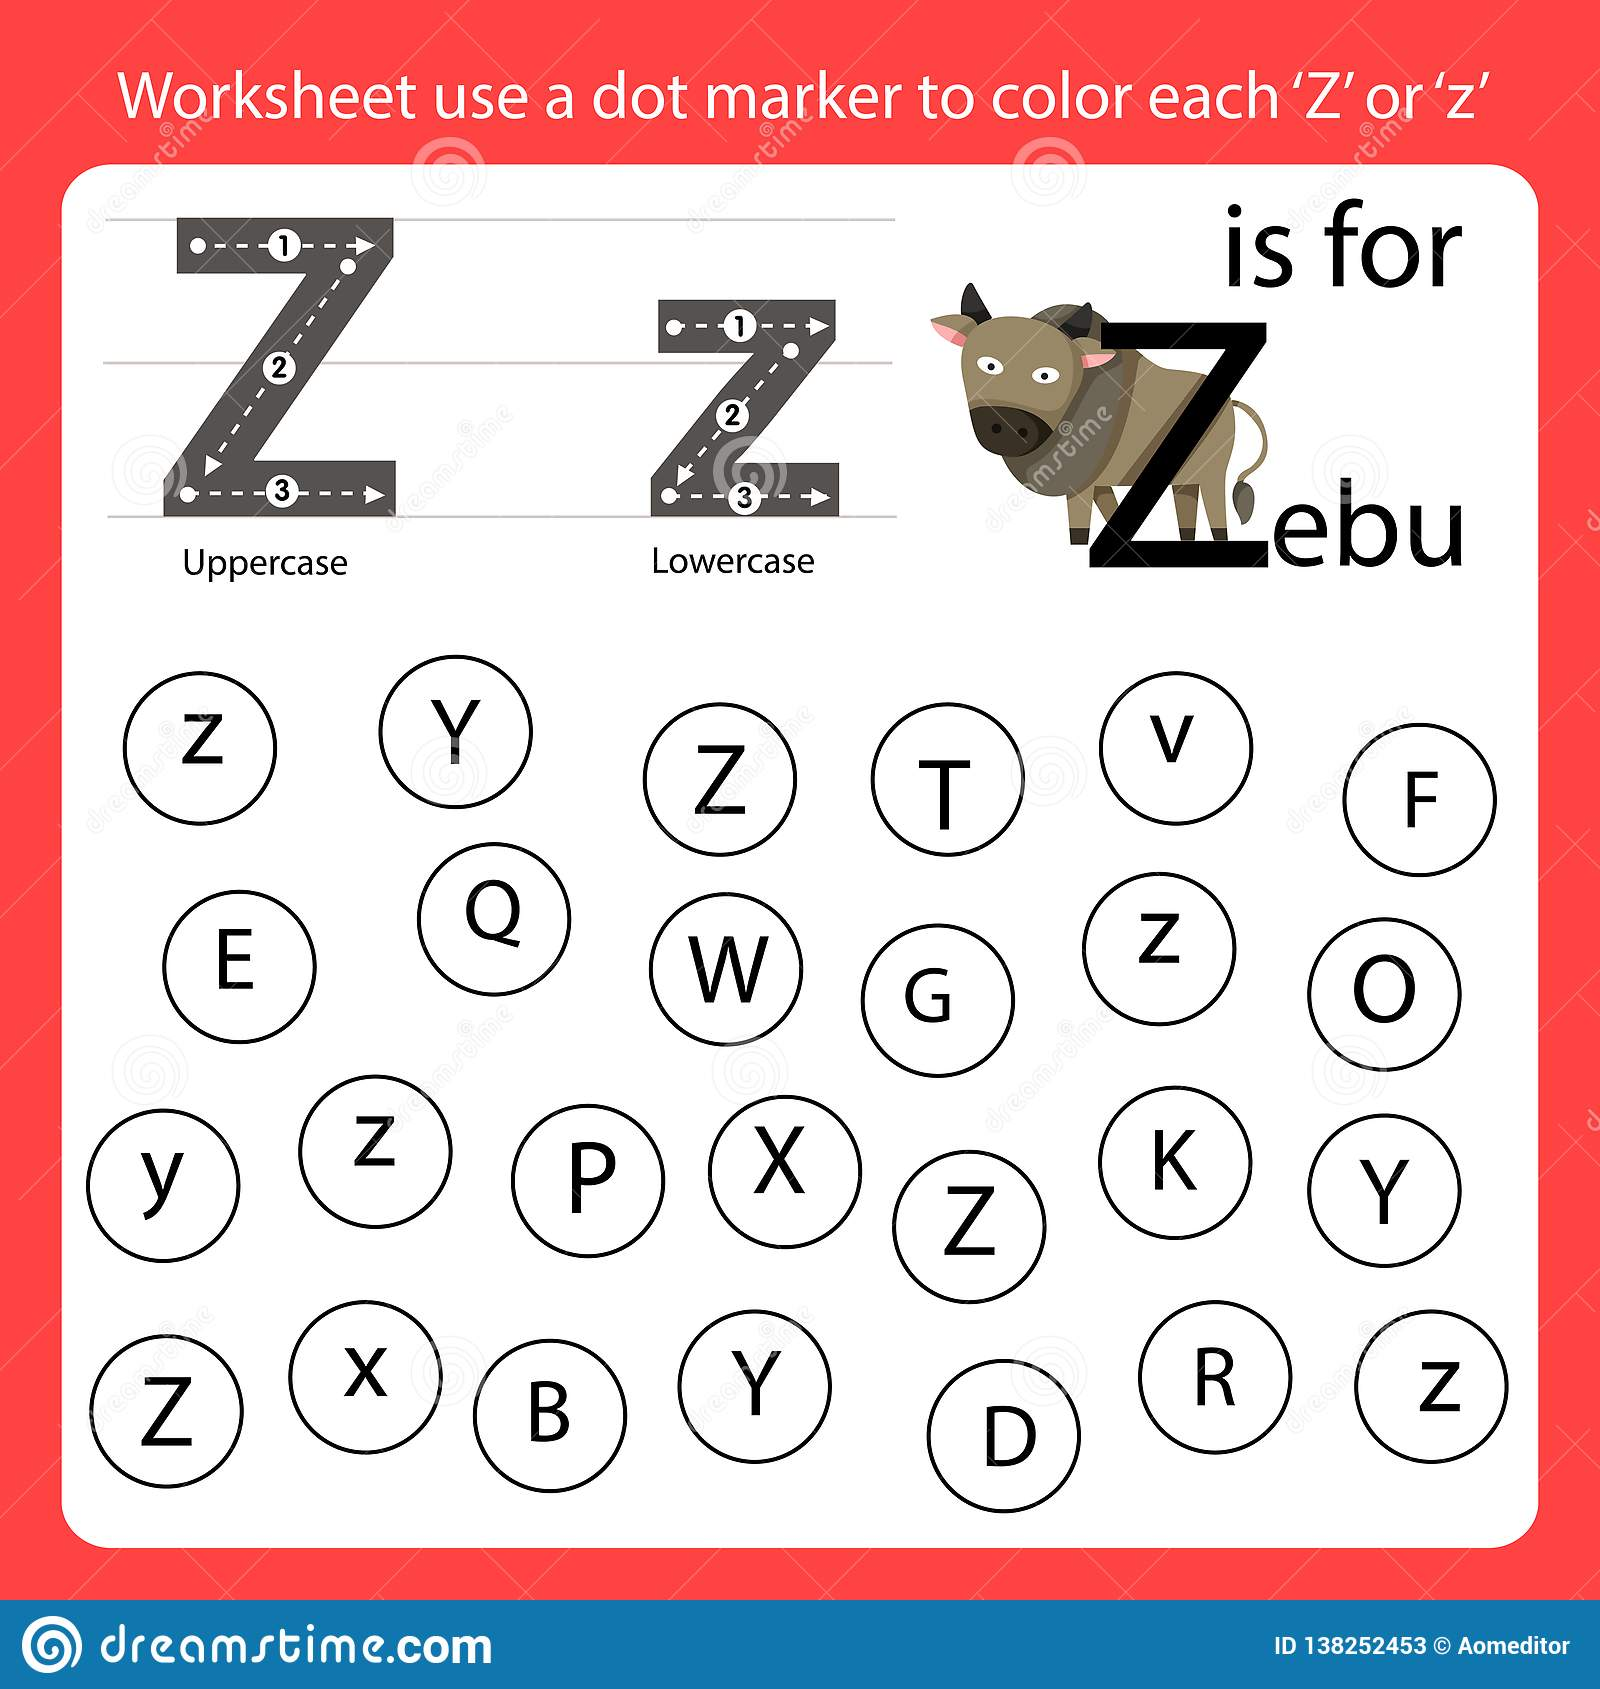 Find The Letter Worksheet Use A Dot Marker To Color Each Z